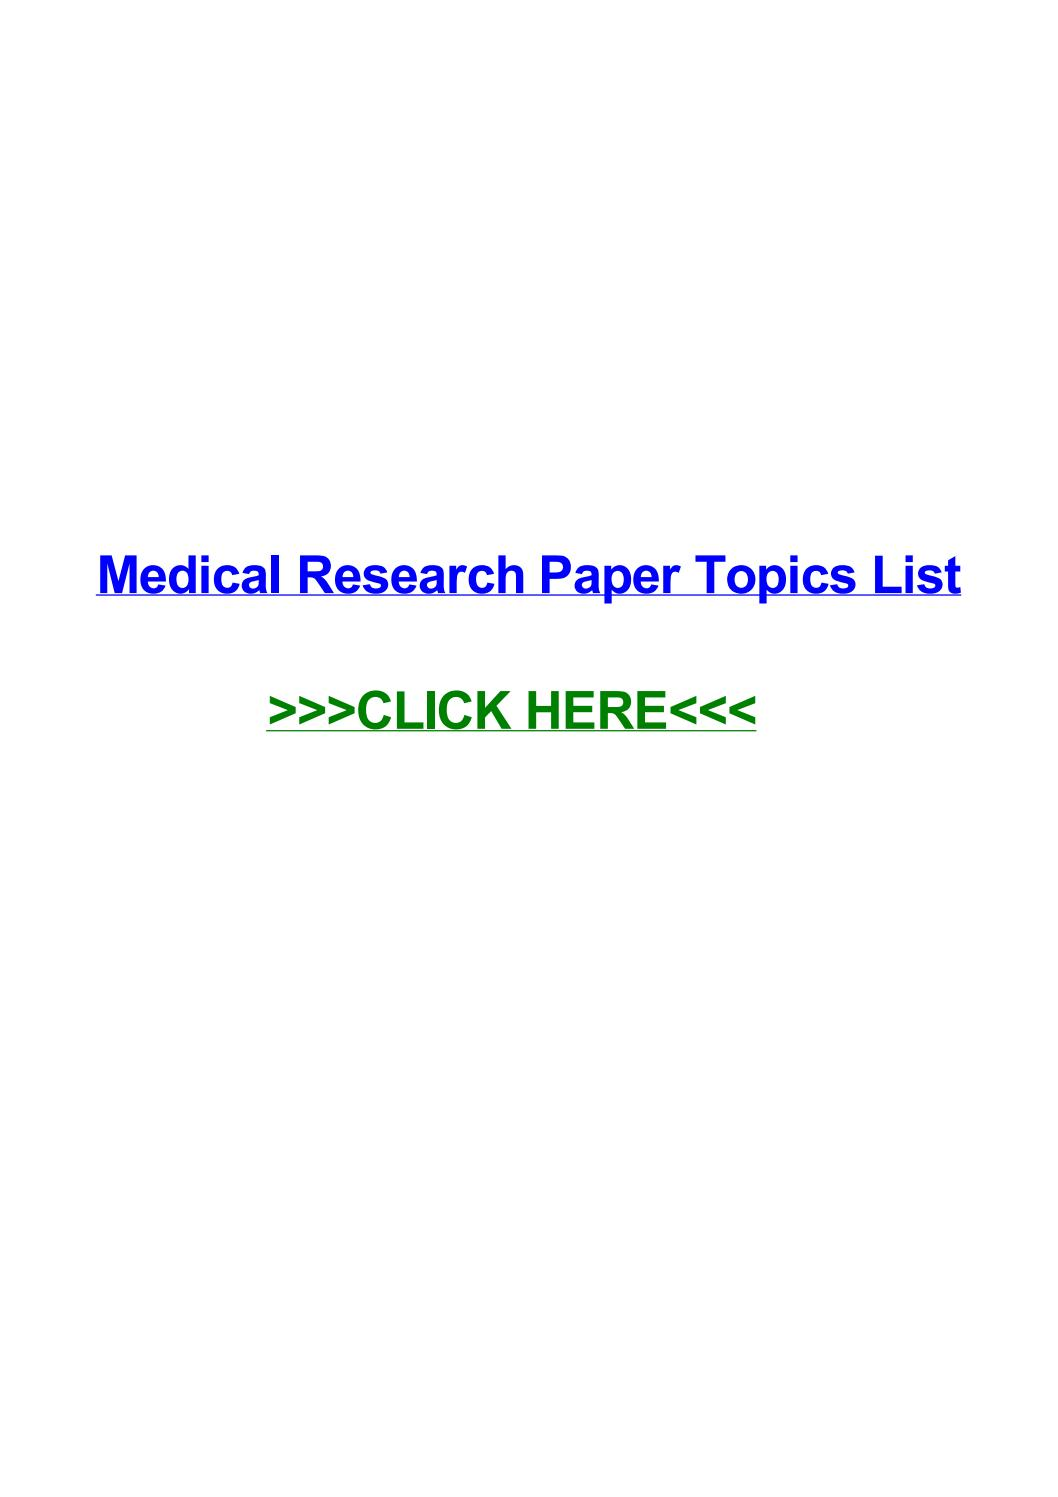 009 Research Paper Topics Medical Page 1 Impressive For Technology Students Malpractice Full